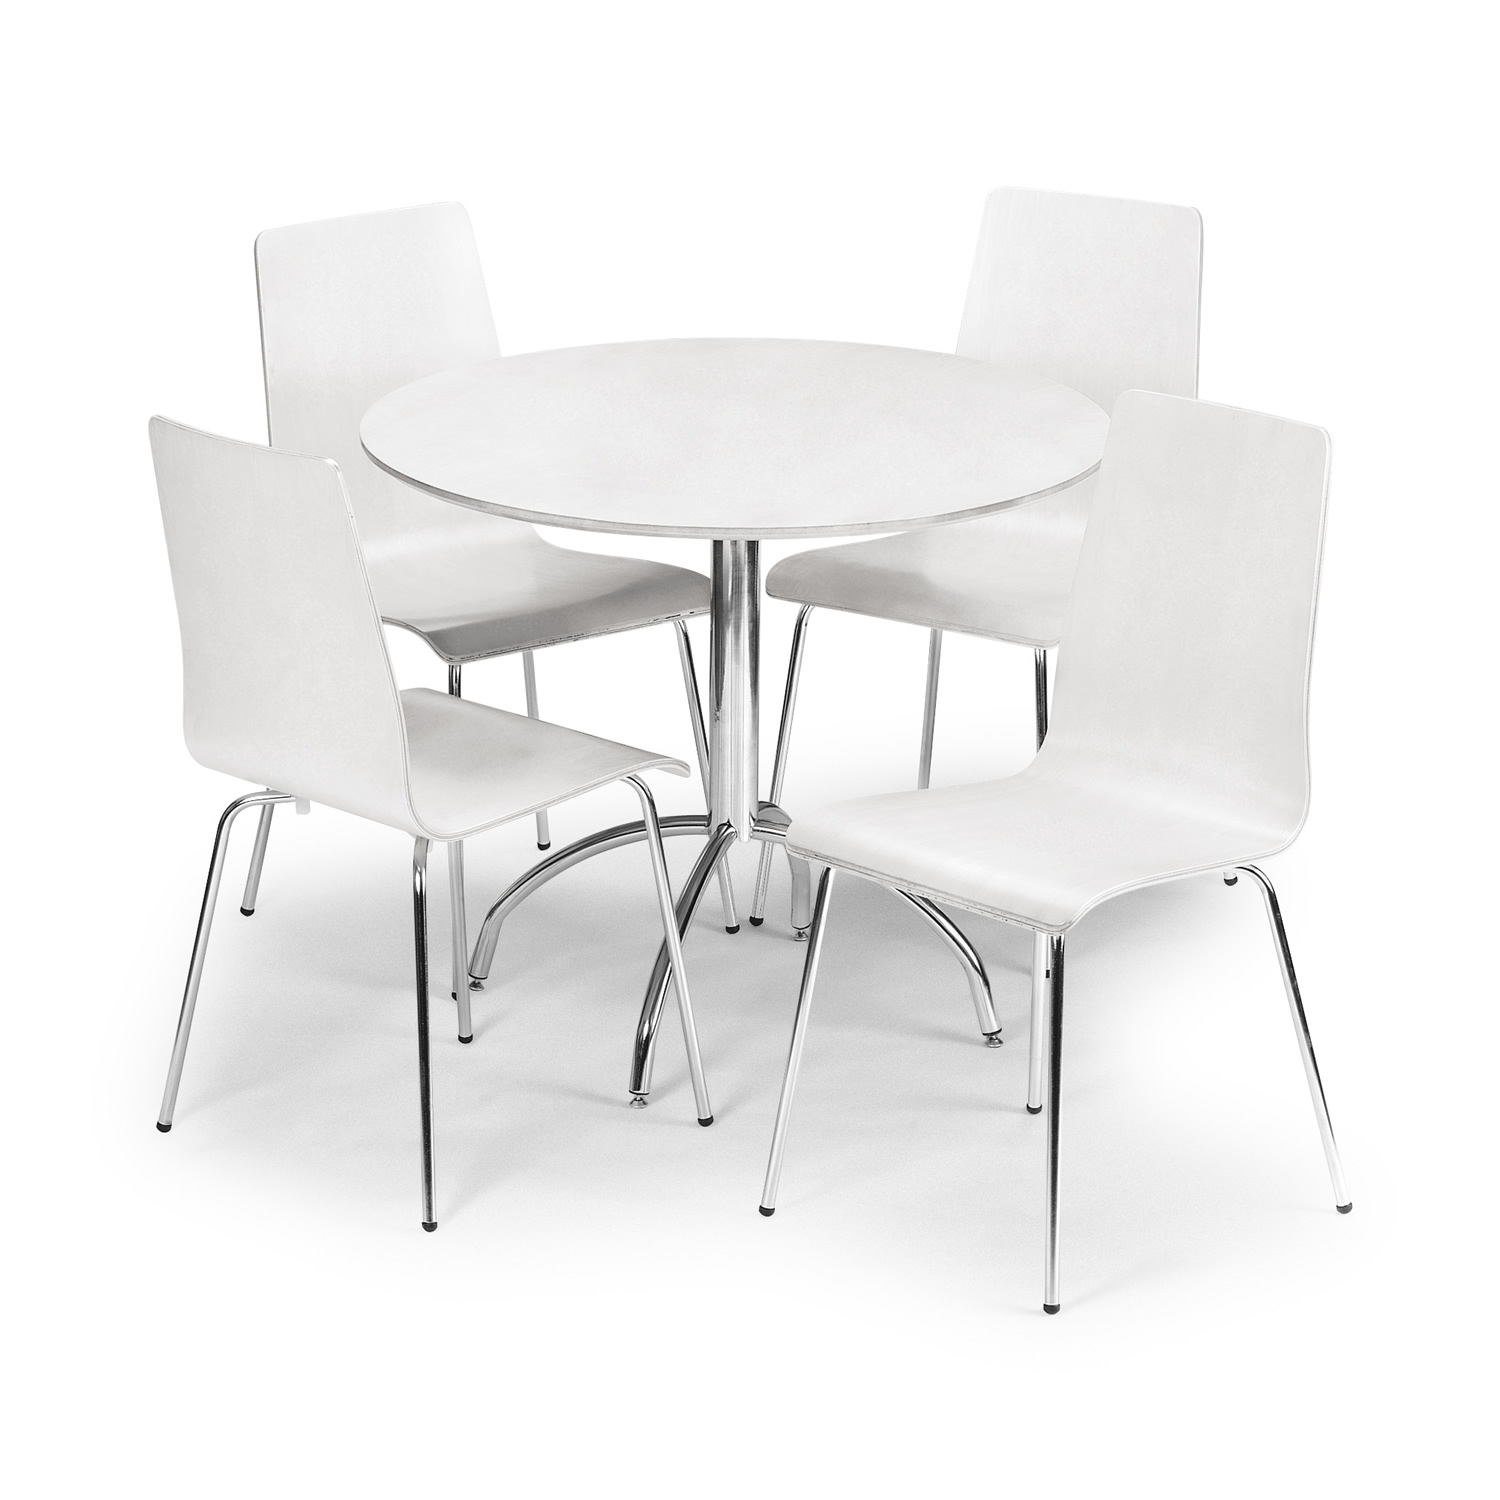 table and chairs. Interior White Round Wooden Table With Silver Steel Legs Of Four Chairs And W